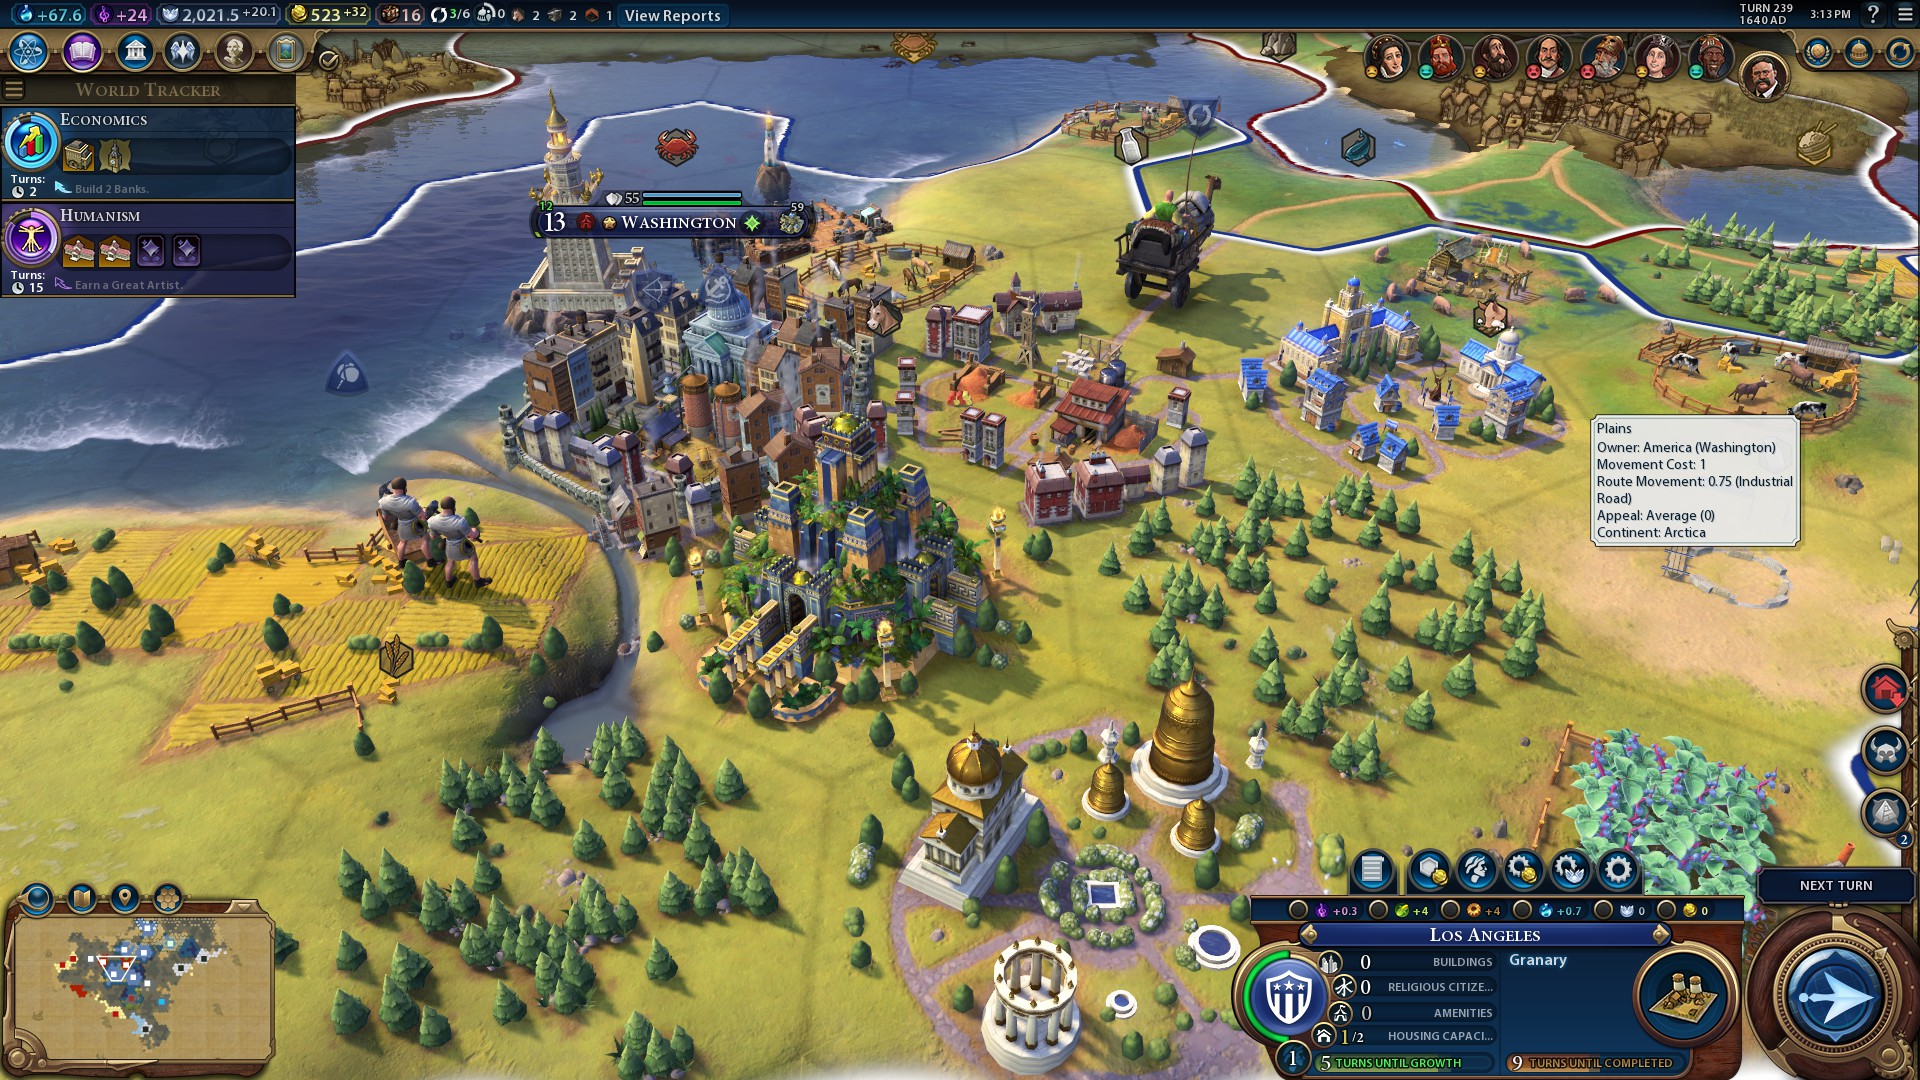 Review: Civilization VI is a beautiful prance through